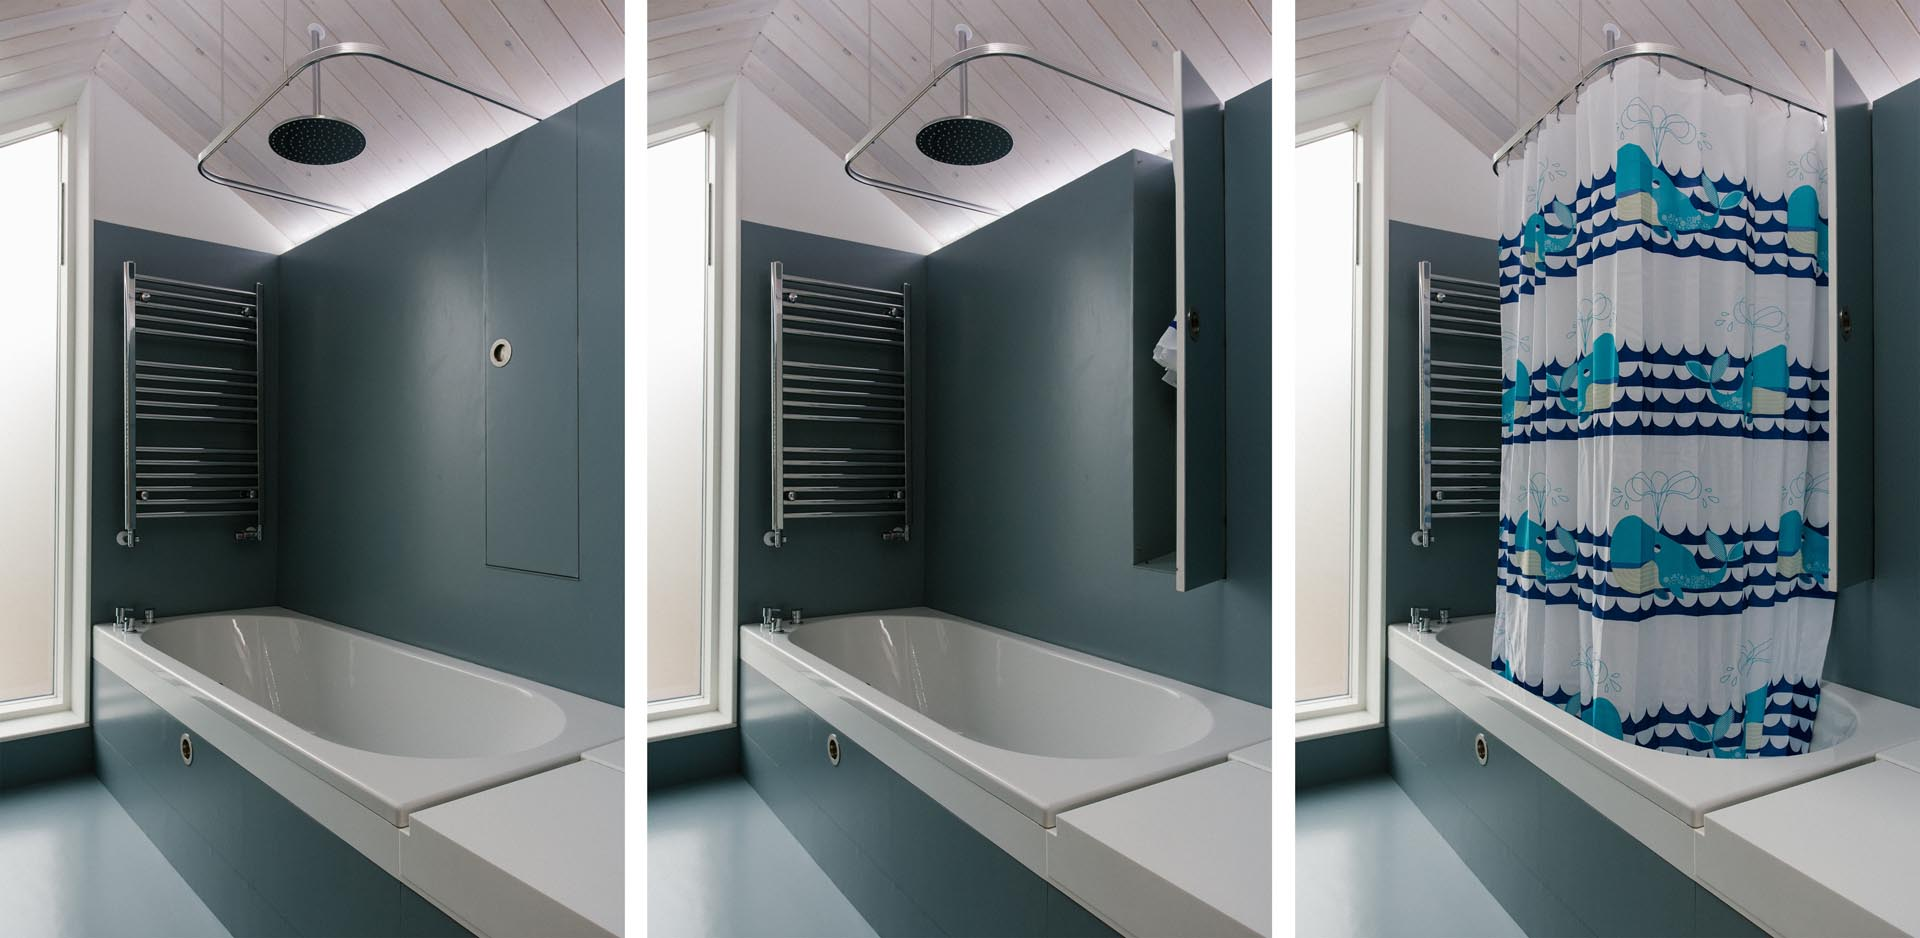 In this bathroom, there's LED lighting and a small closet to hide away the shower curtain when not in use.